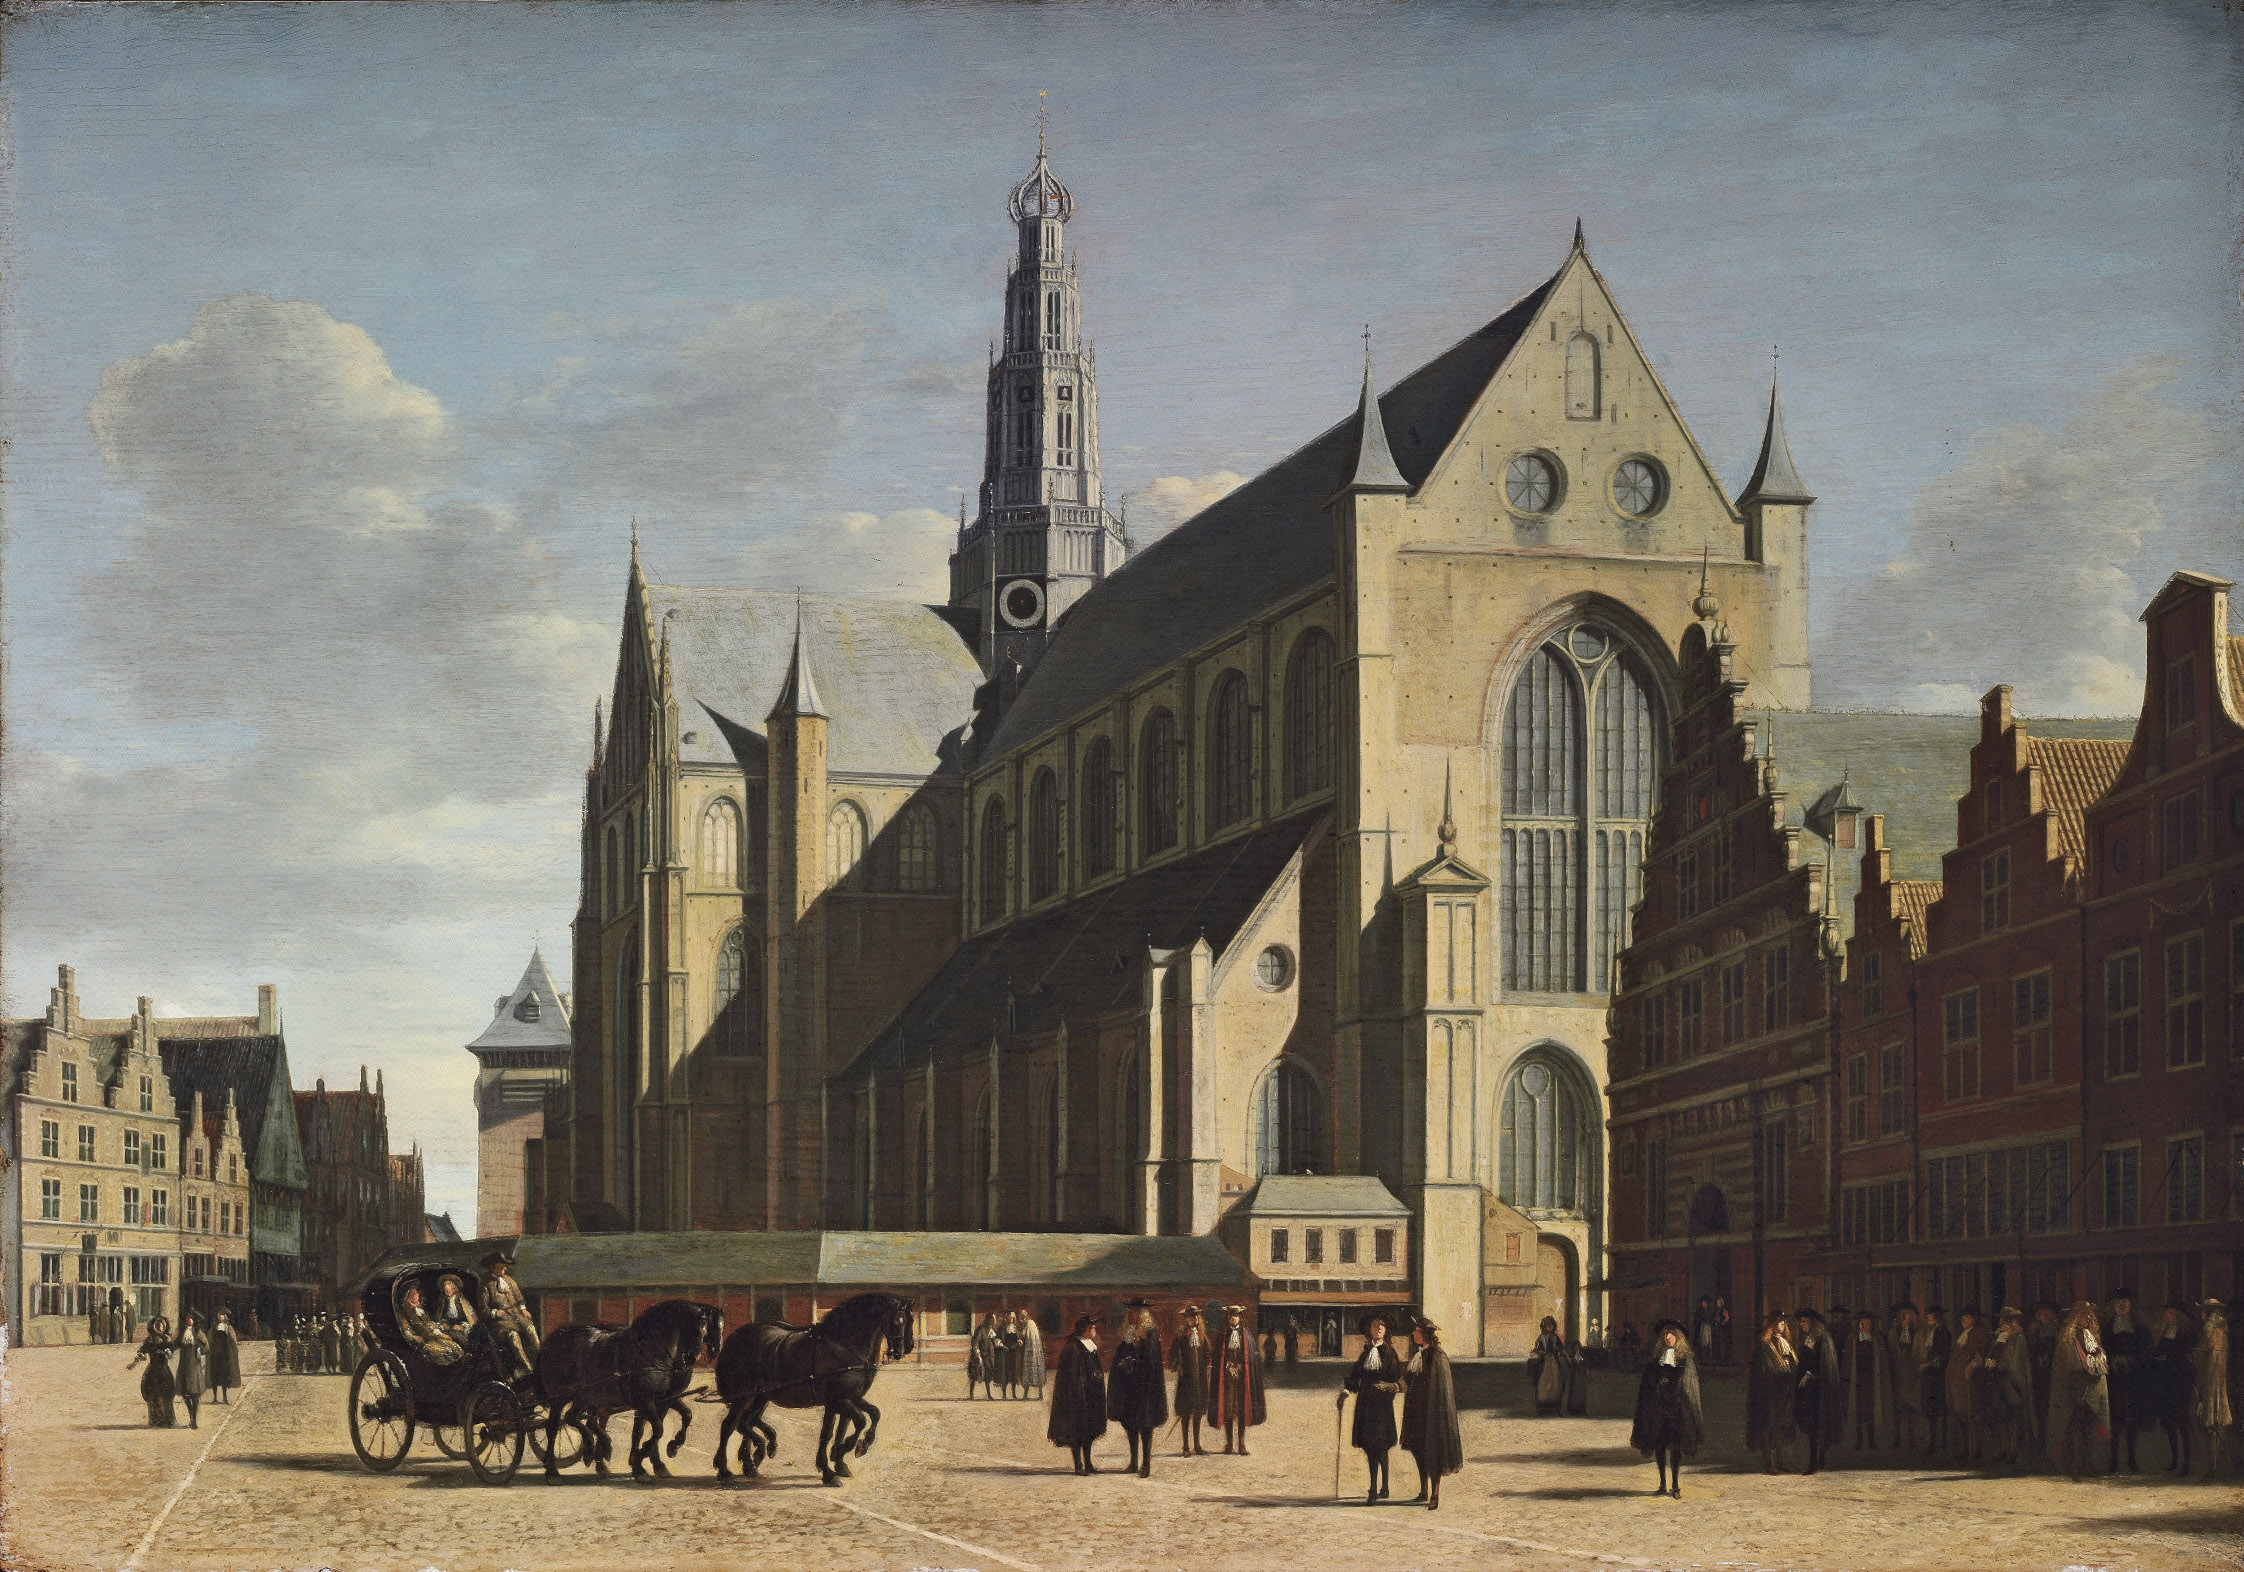 The Grote Markt, Haarlem, looking south-east, with Saint Bavo's Cathedral